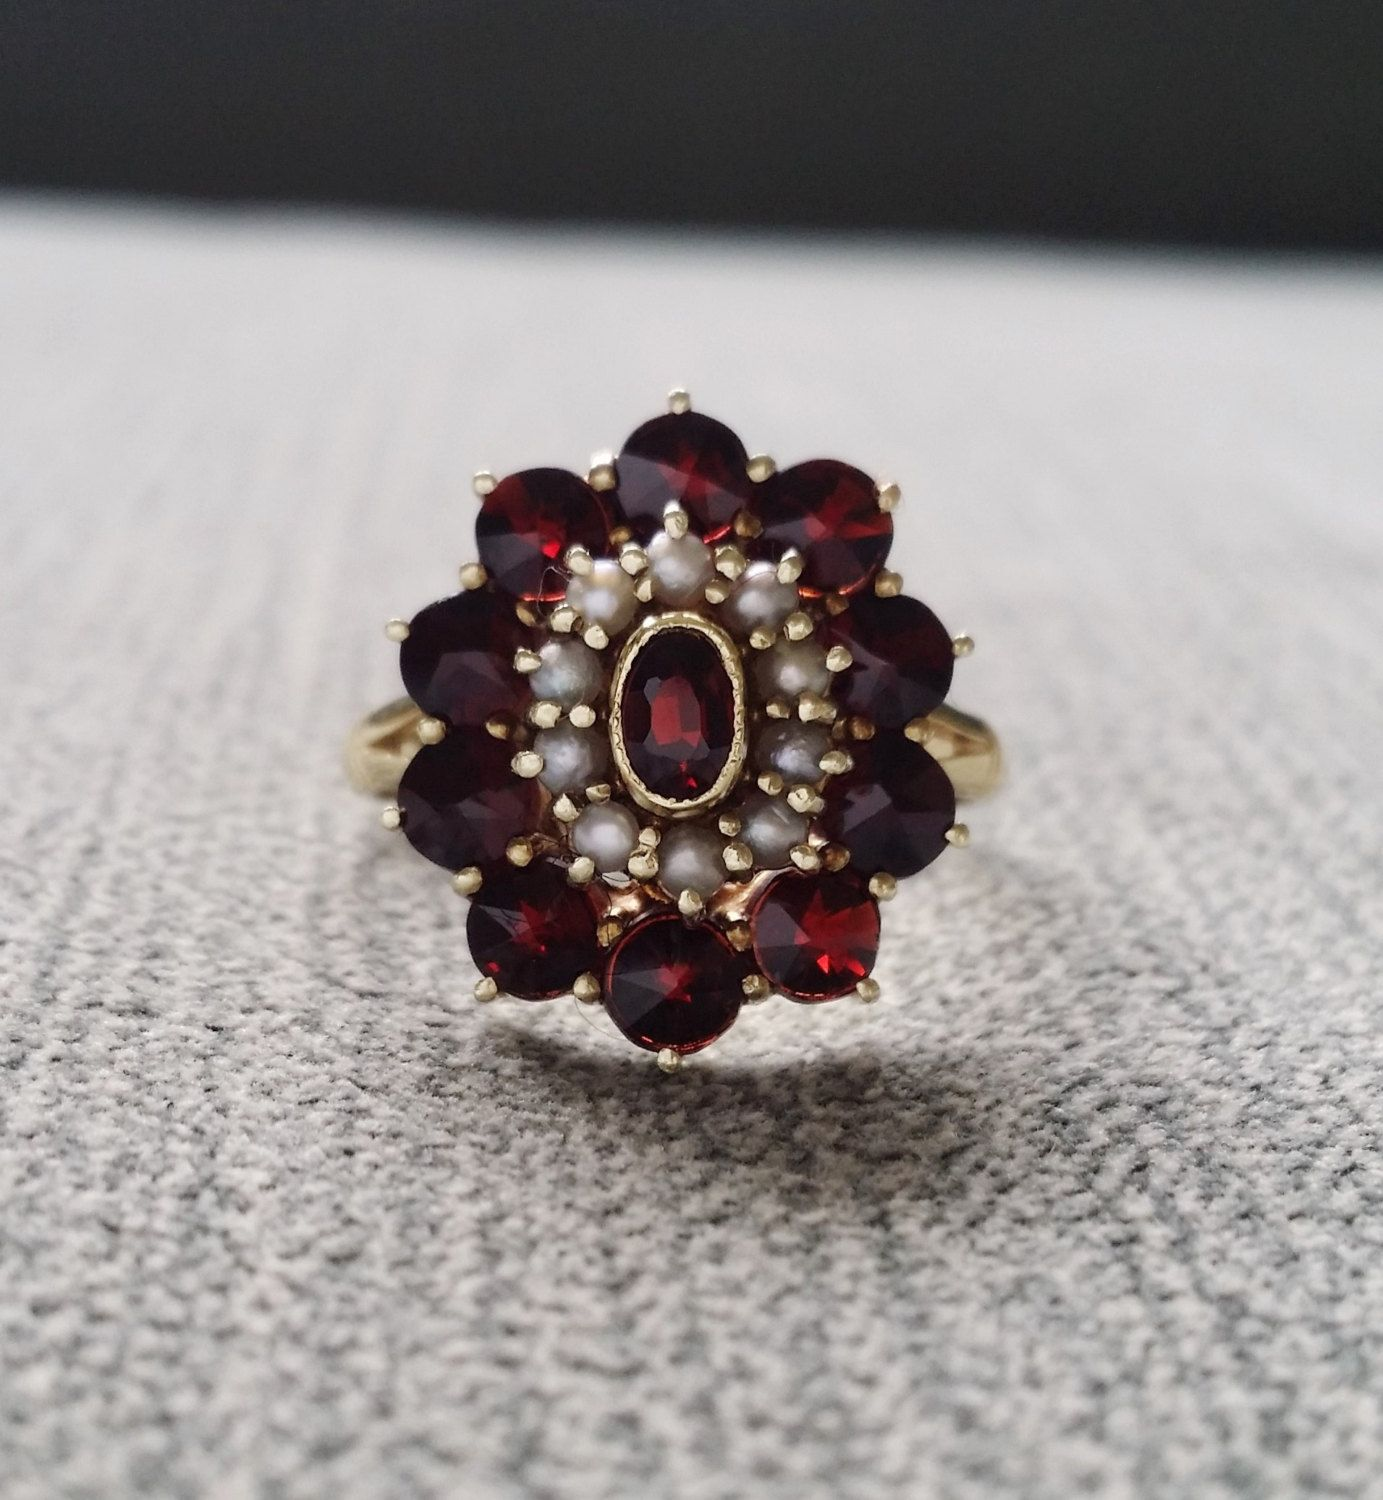 Antique Garnet And Seed Pearl Engagement Ring January Art